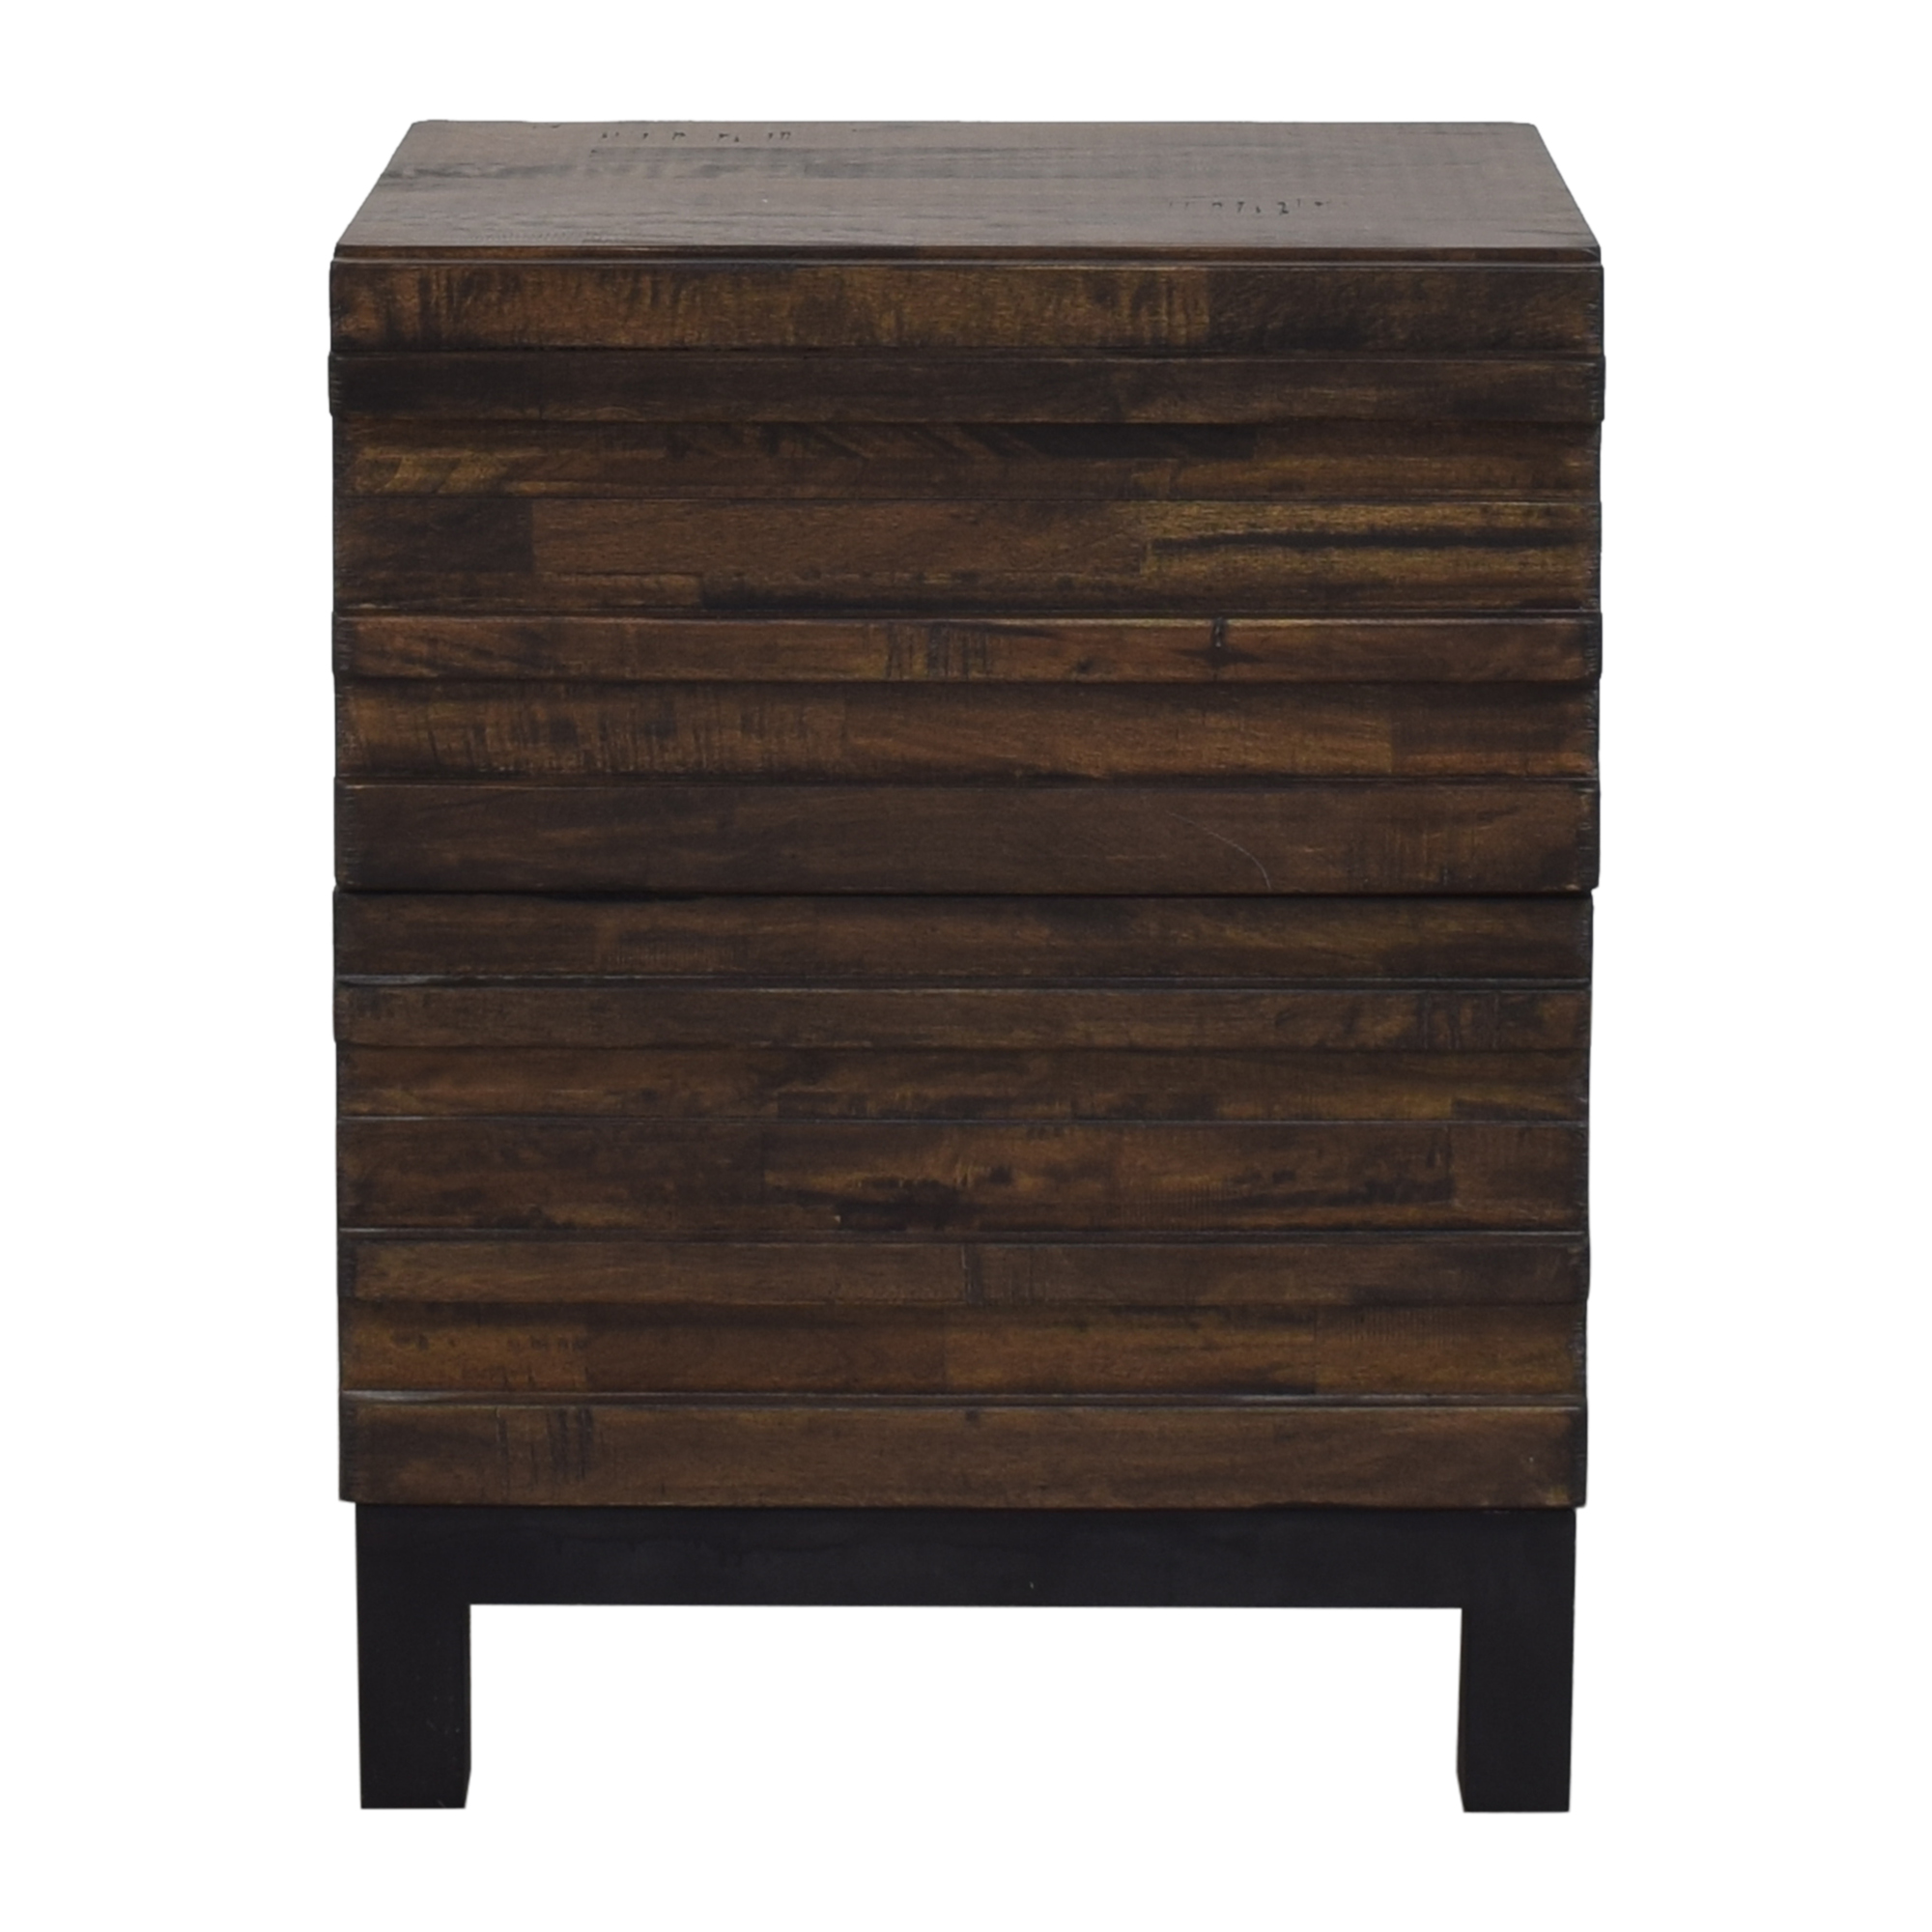 Raymour & Flanigan Raymour & Flanigan Two Drawer Nightstand price